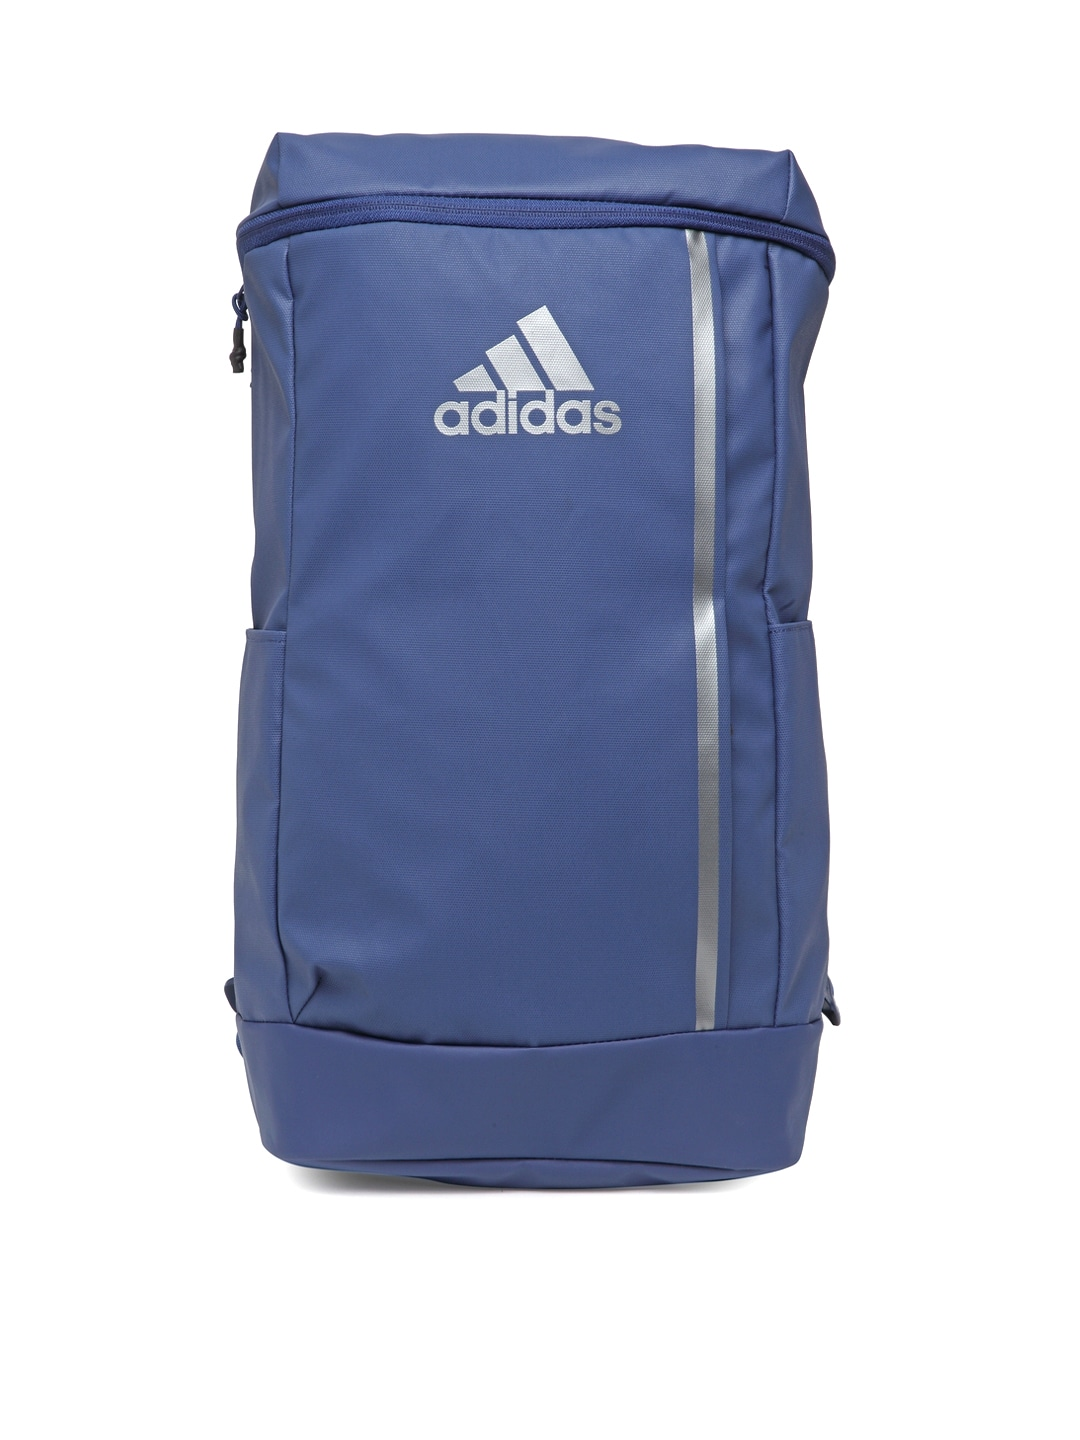 Adidas Flip Flops Backpacks Wristbands Tights - Buy Adidas Flip Flops  Backpacks Wristbands Tights online in India 6dd408b077889